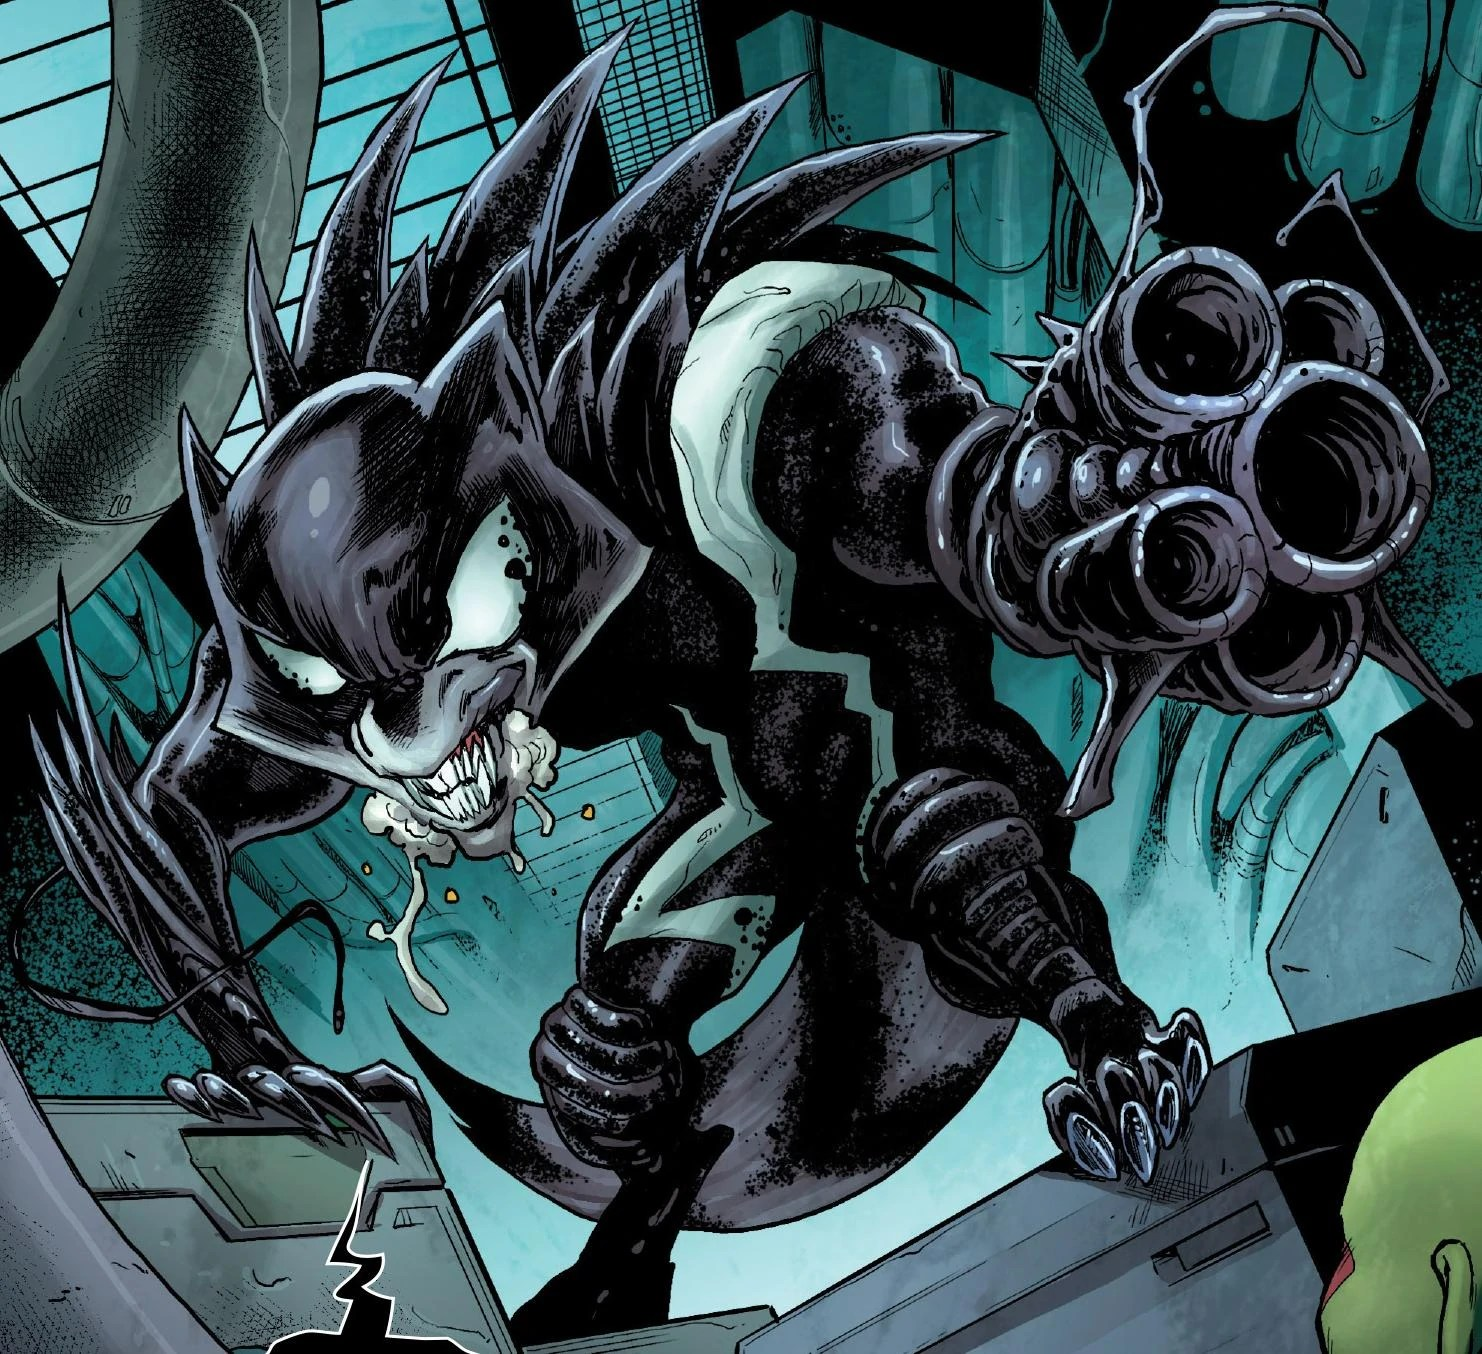 Venom Marvel  Villains Wiki  villains bad guys comic books anime